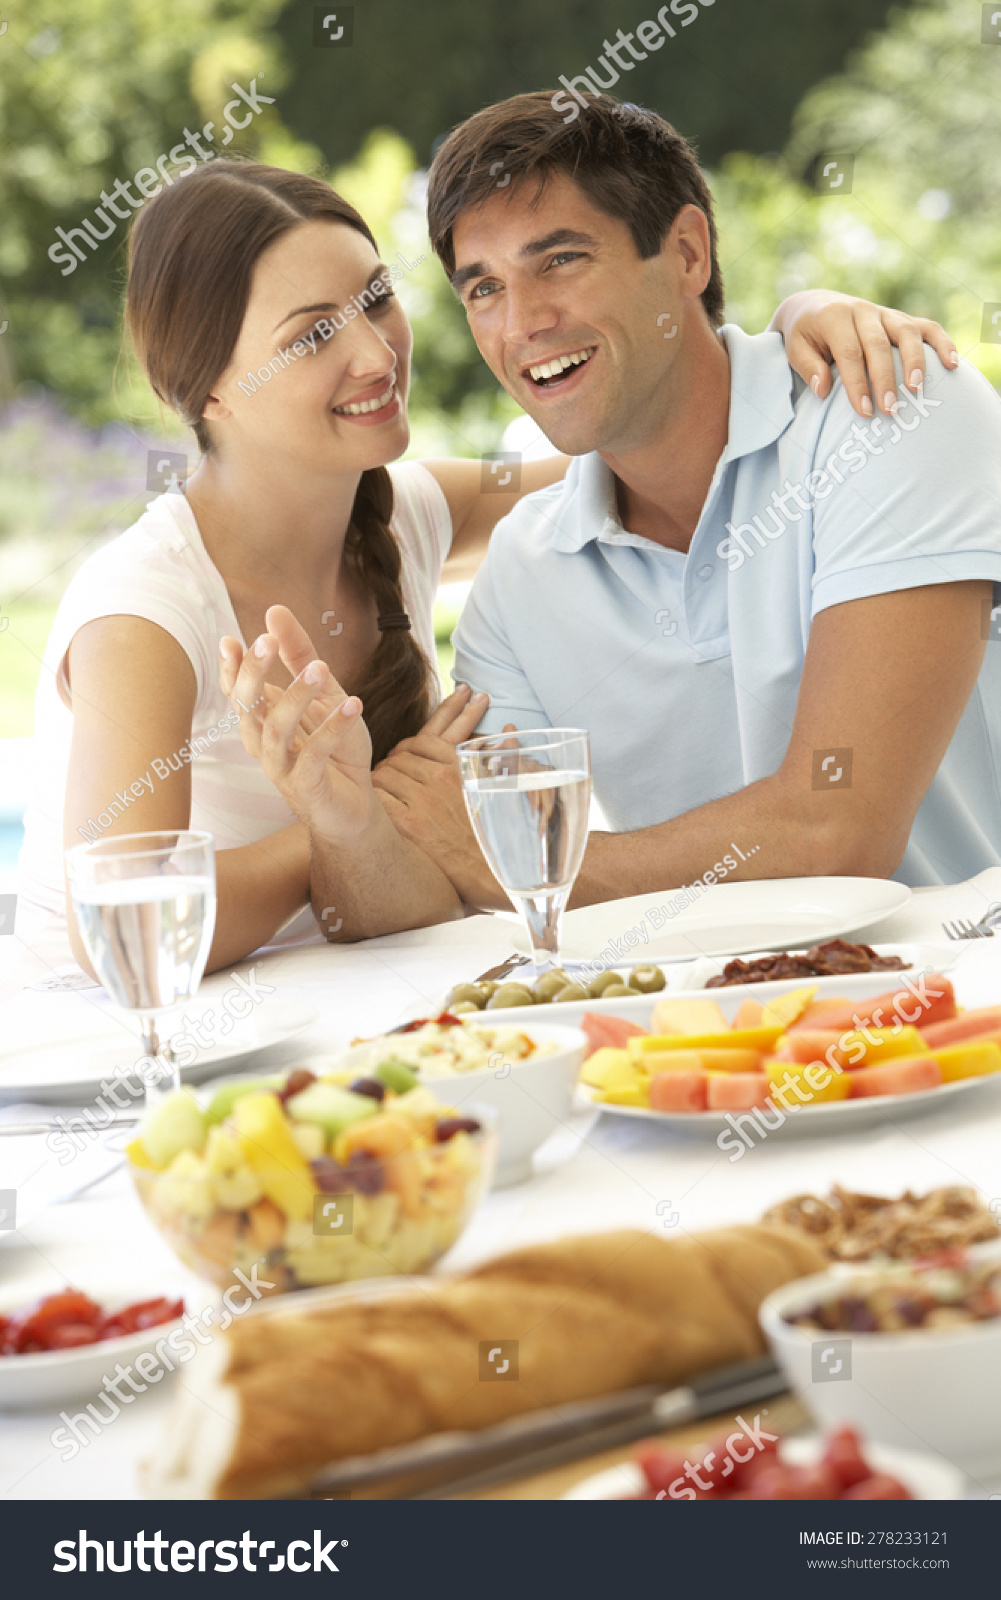 Young couple enjoying meal outdoors stock photo 278233121 for Meal outdoors